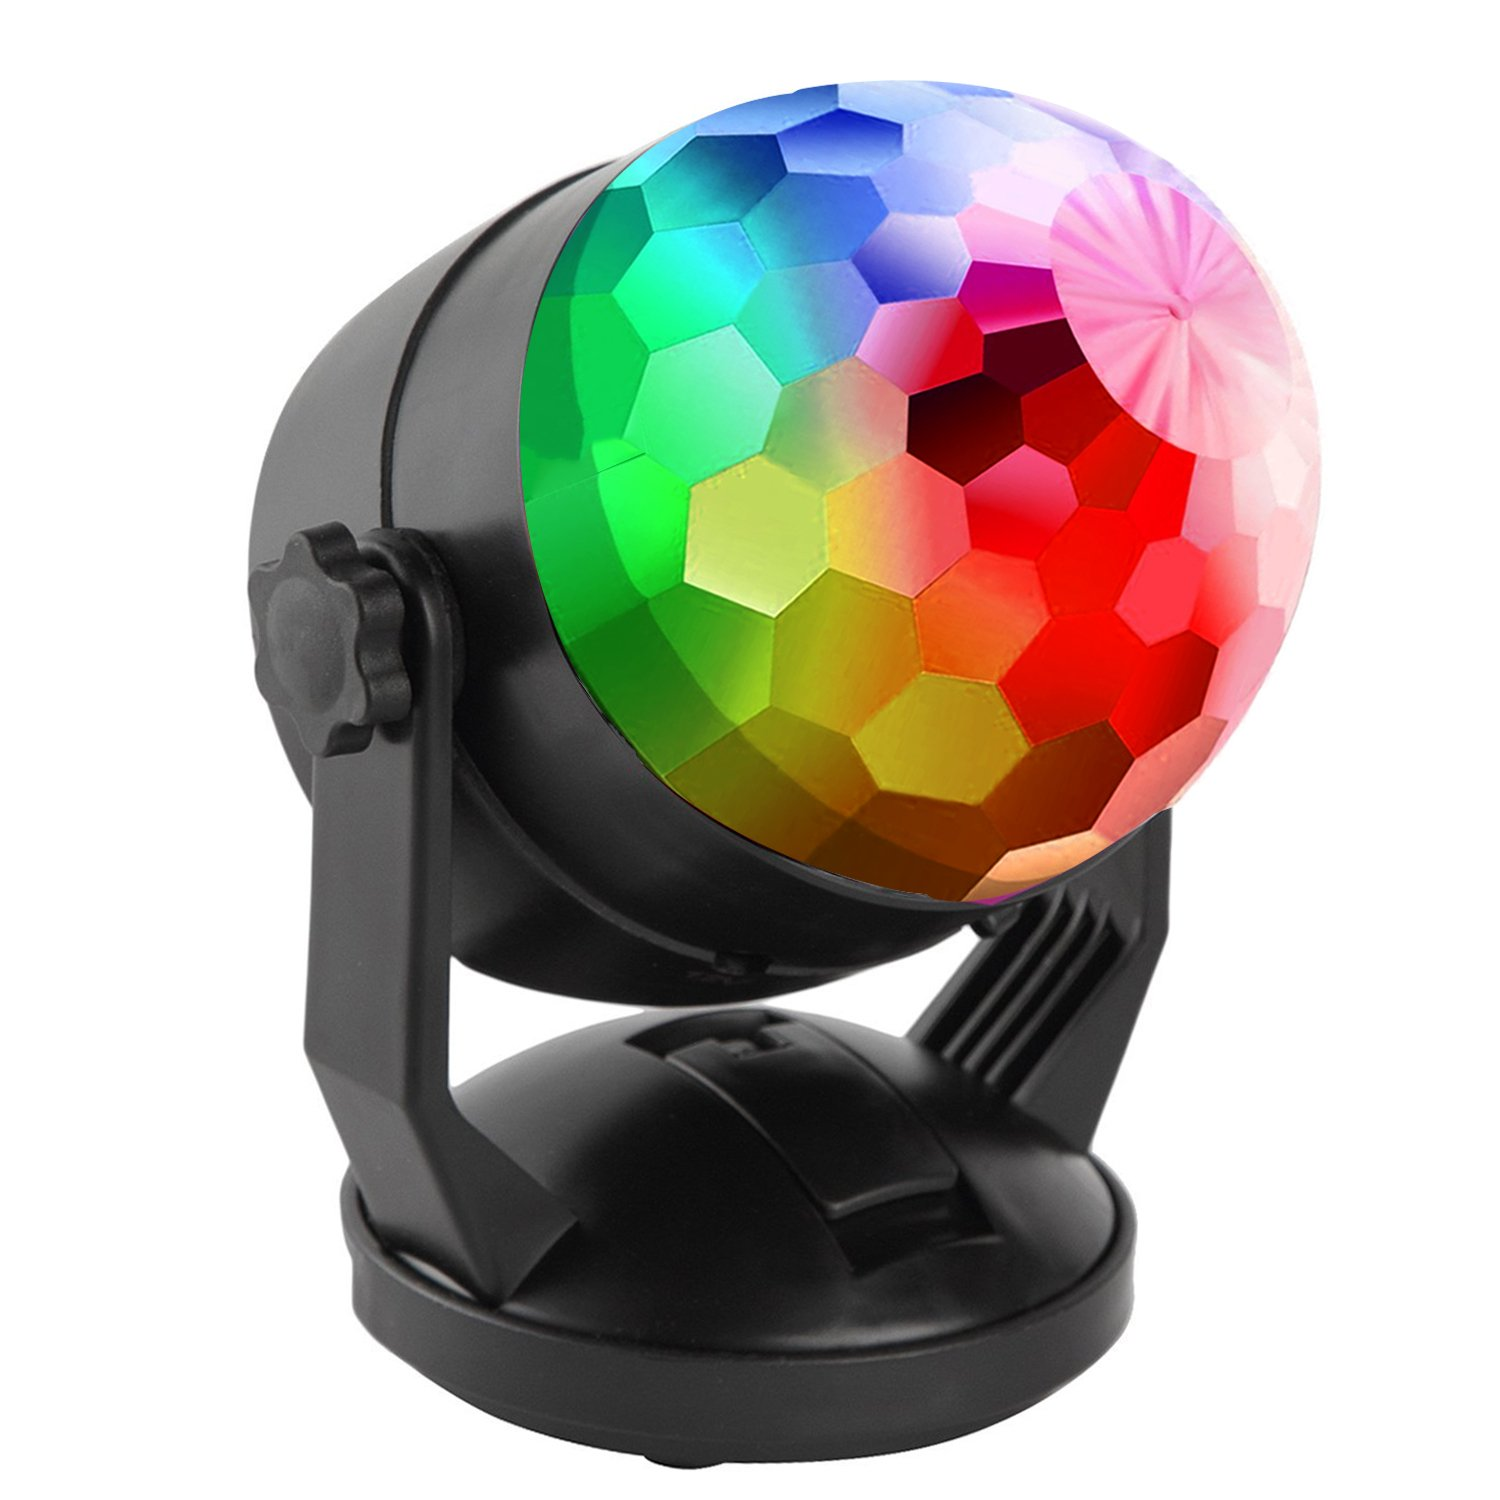 Portable Sound Activated Party Lights for Outdoor and Indoor, Battery Powered/USB Plug in, Dj Lighting, RBG Disco Ball, Strobe Lamp Stage Par Light for Car Room Dance Parties Birthday DJ Bar Club Pub by Luditek